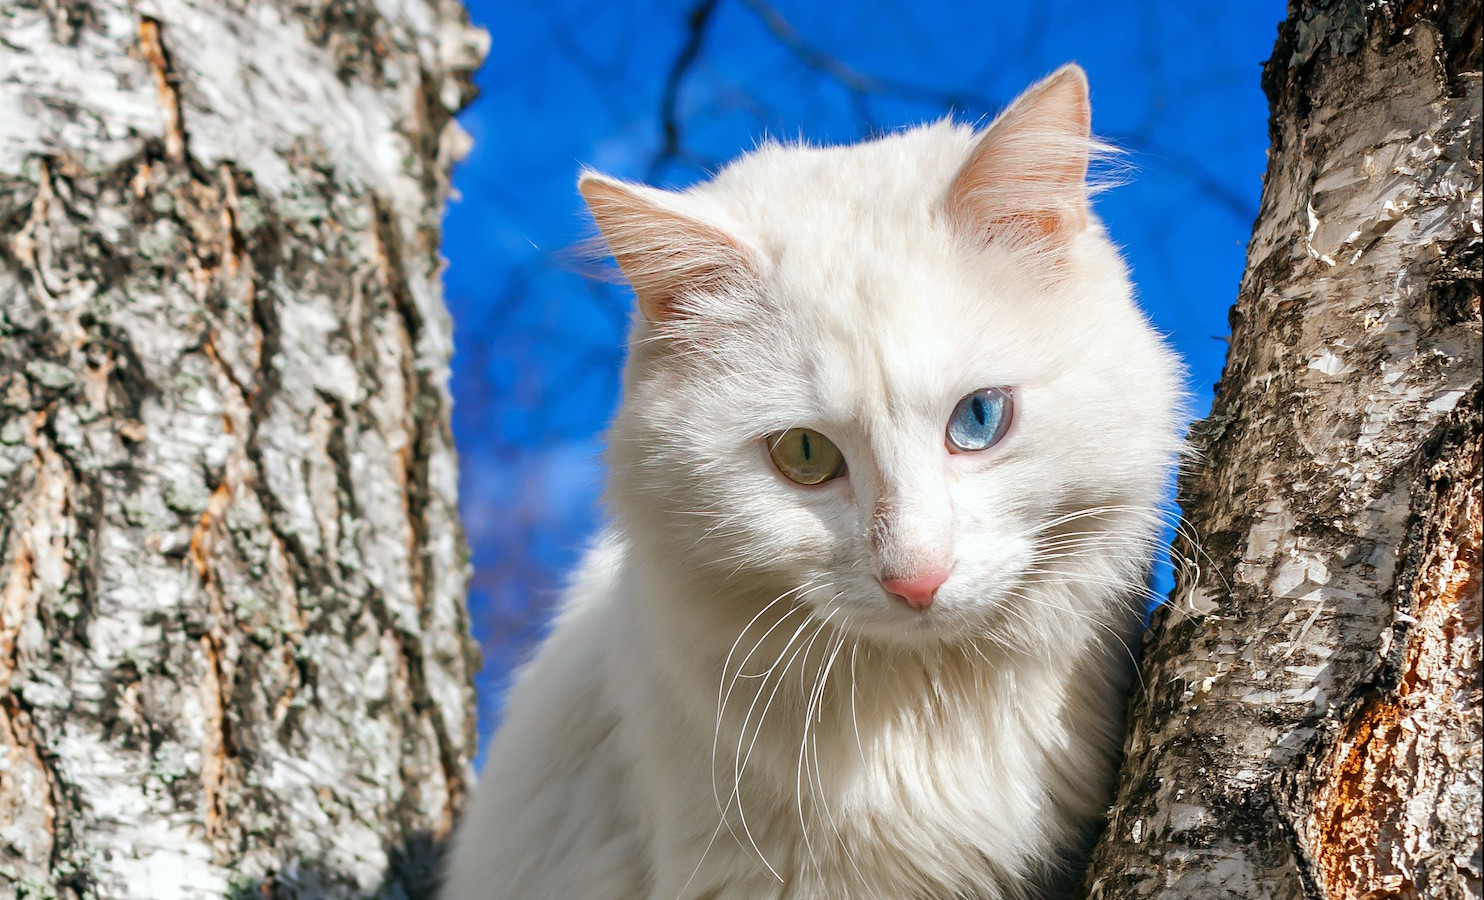 beautiful fluffy white cat with different eyes